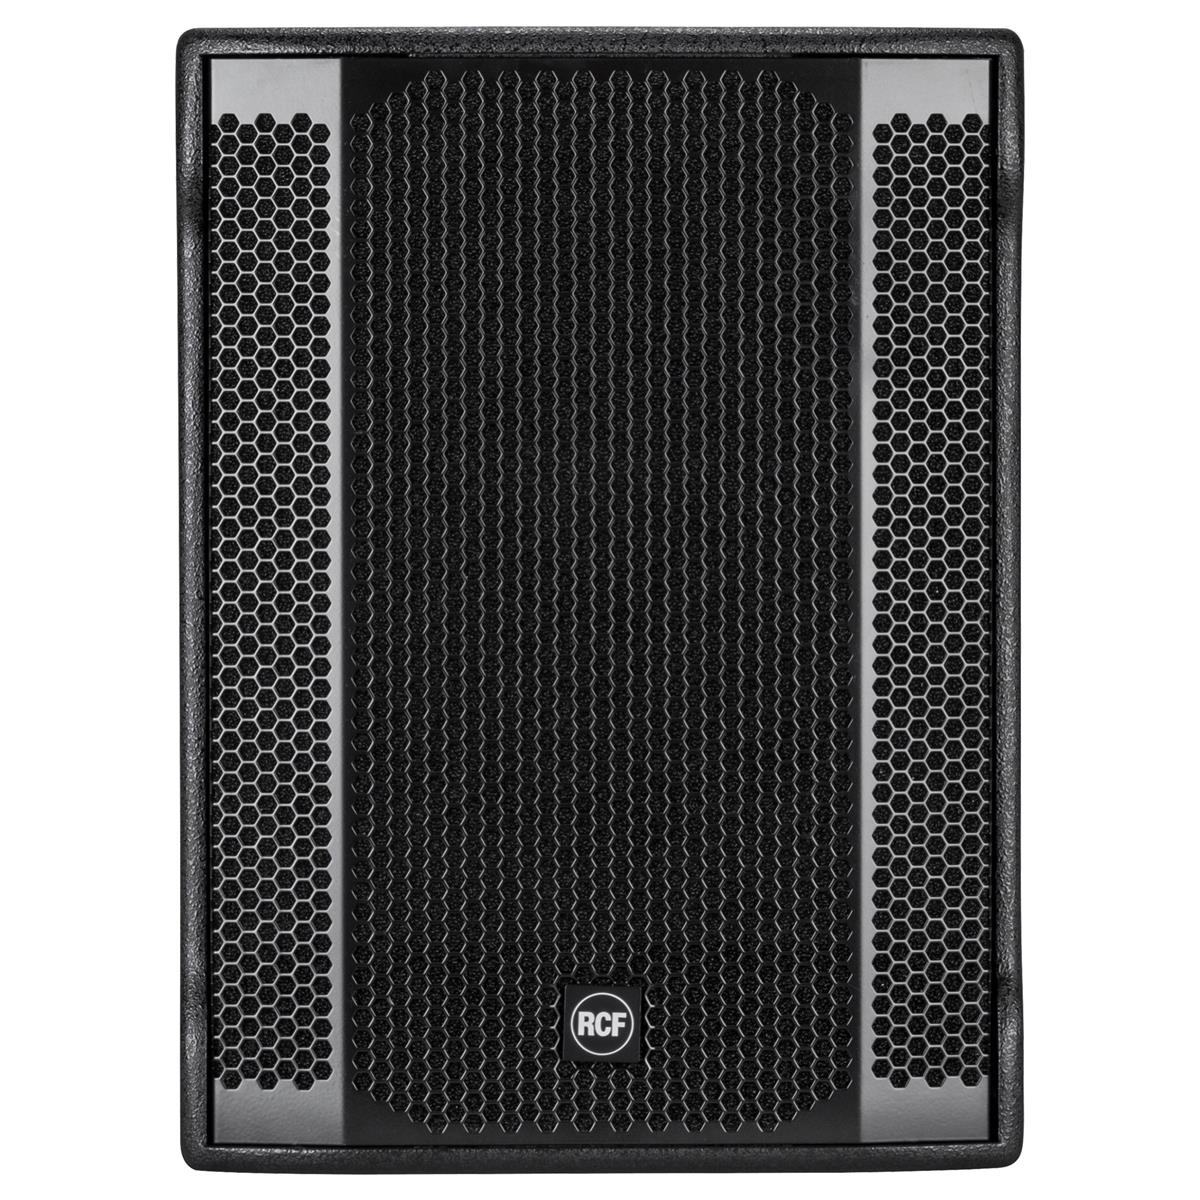 RCF 15in Bandpass Active Subwoofer, 1100Wrms, 2200Wpeak